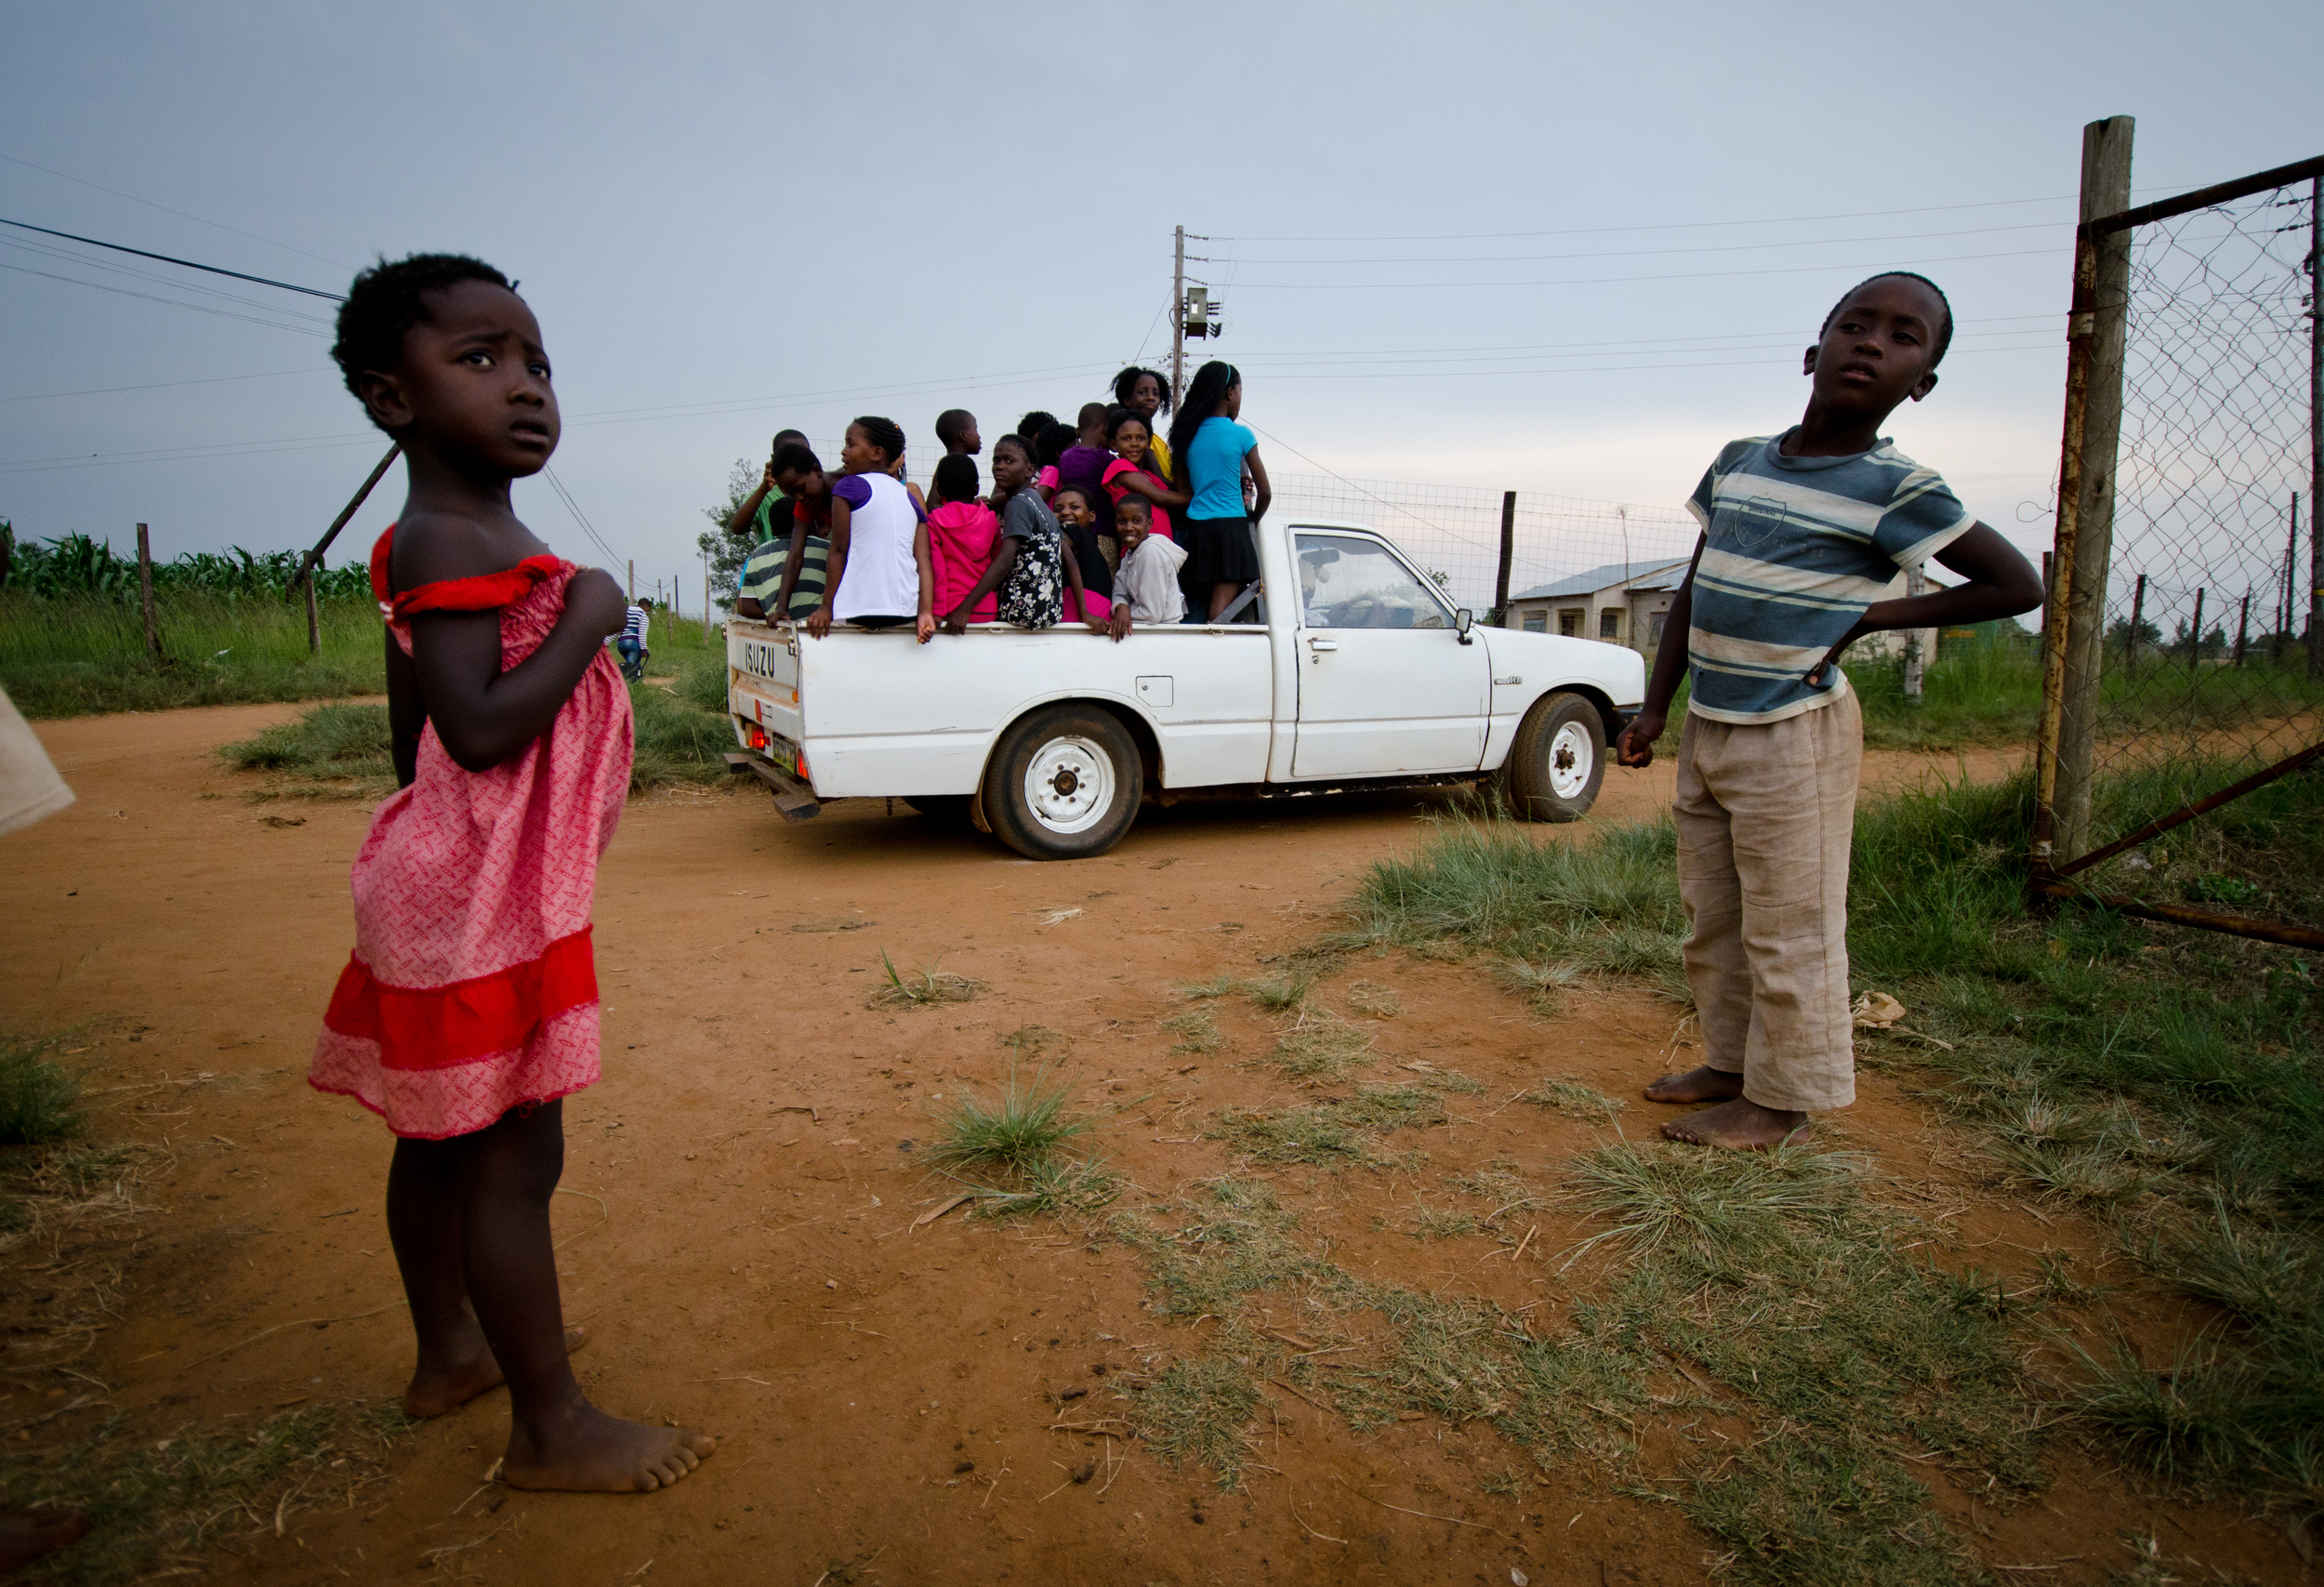 Children in rural Swaziland catch a ride home from Bible club in the back of a pickup truck.